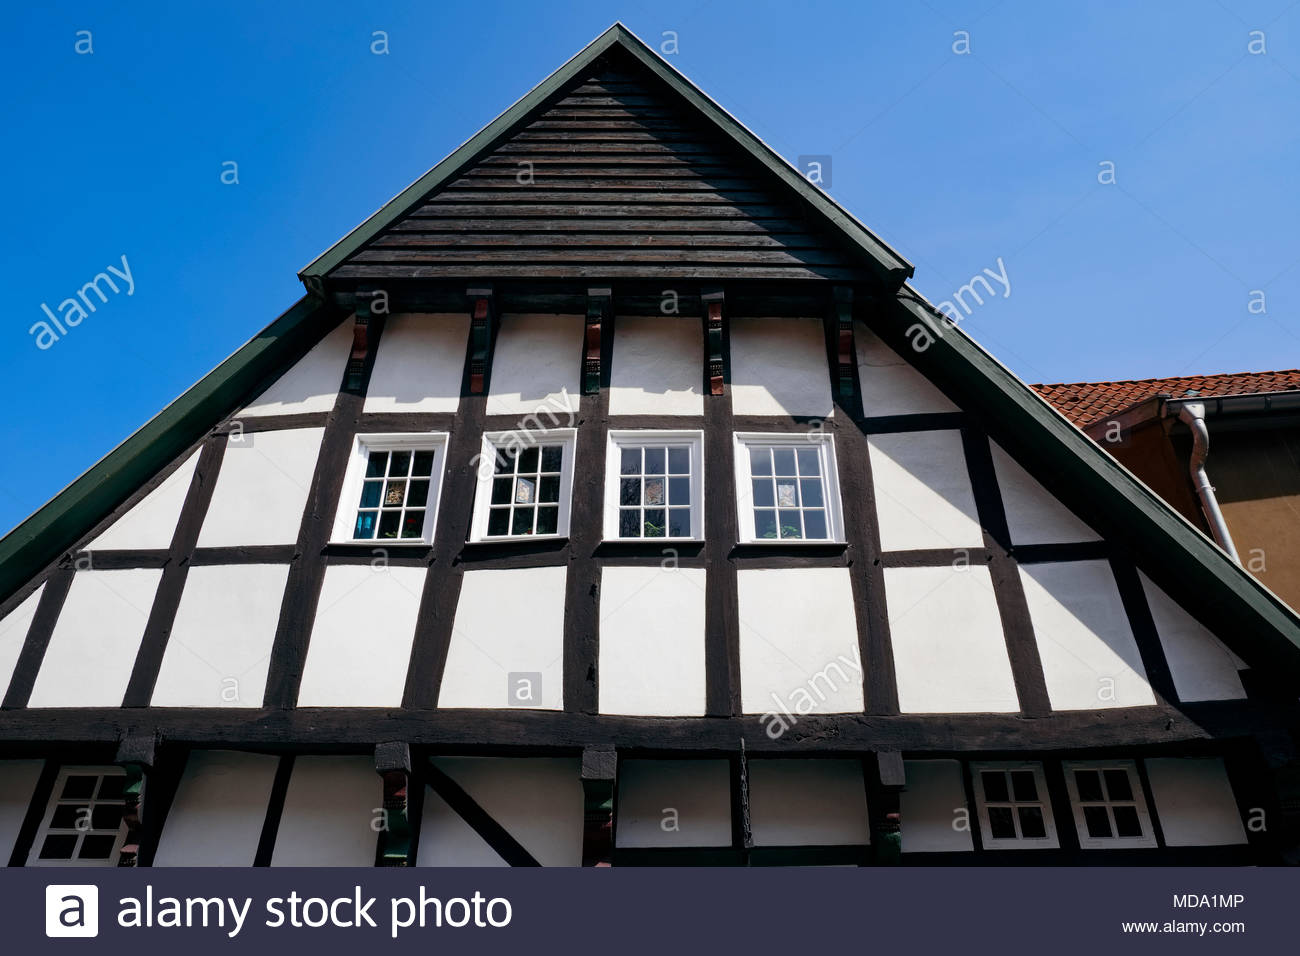 Architectural detail of post and beam building in Tecklenburg, NRW, Germany - Stock Image